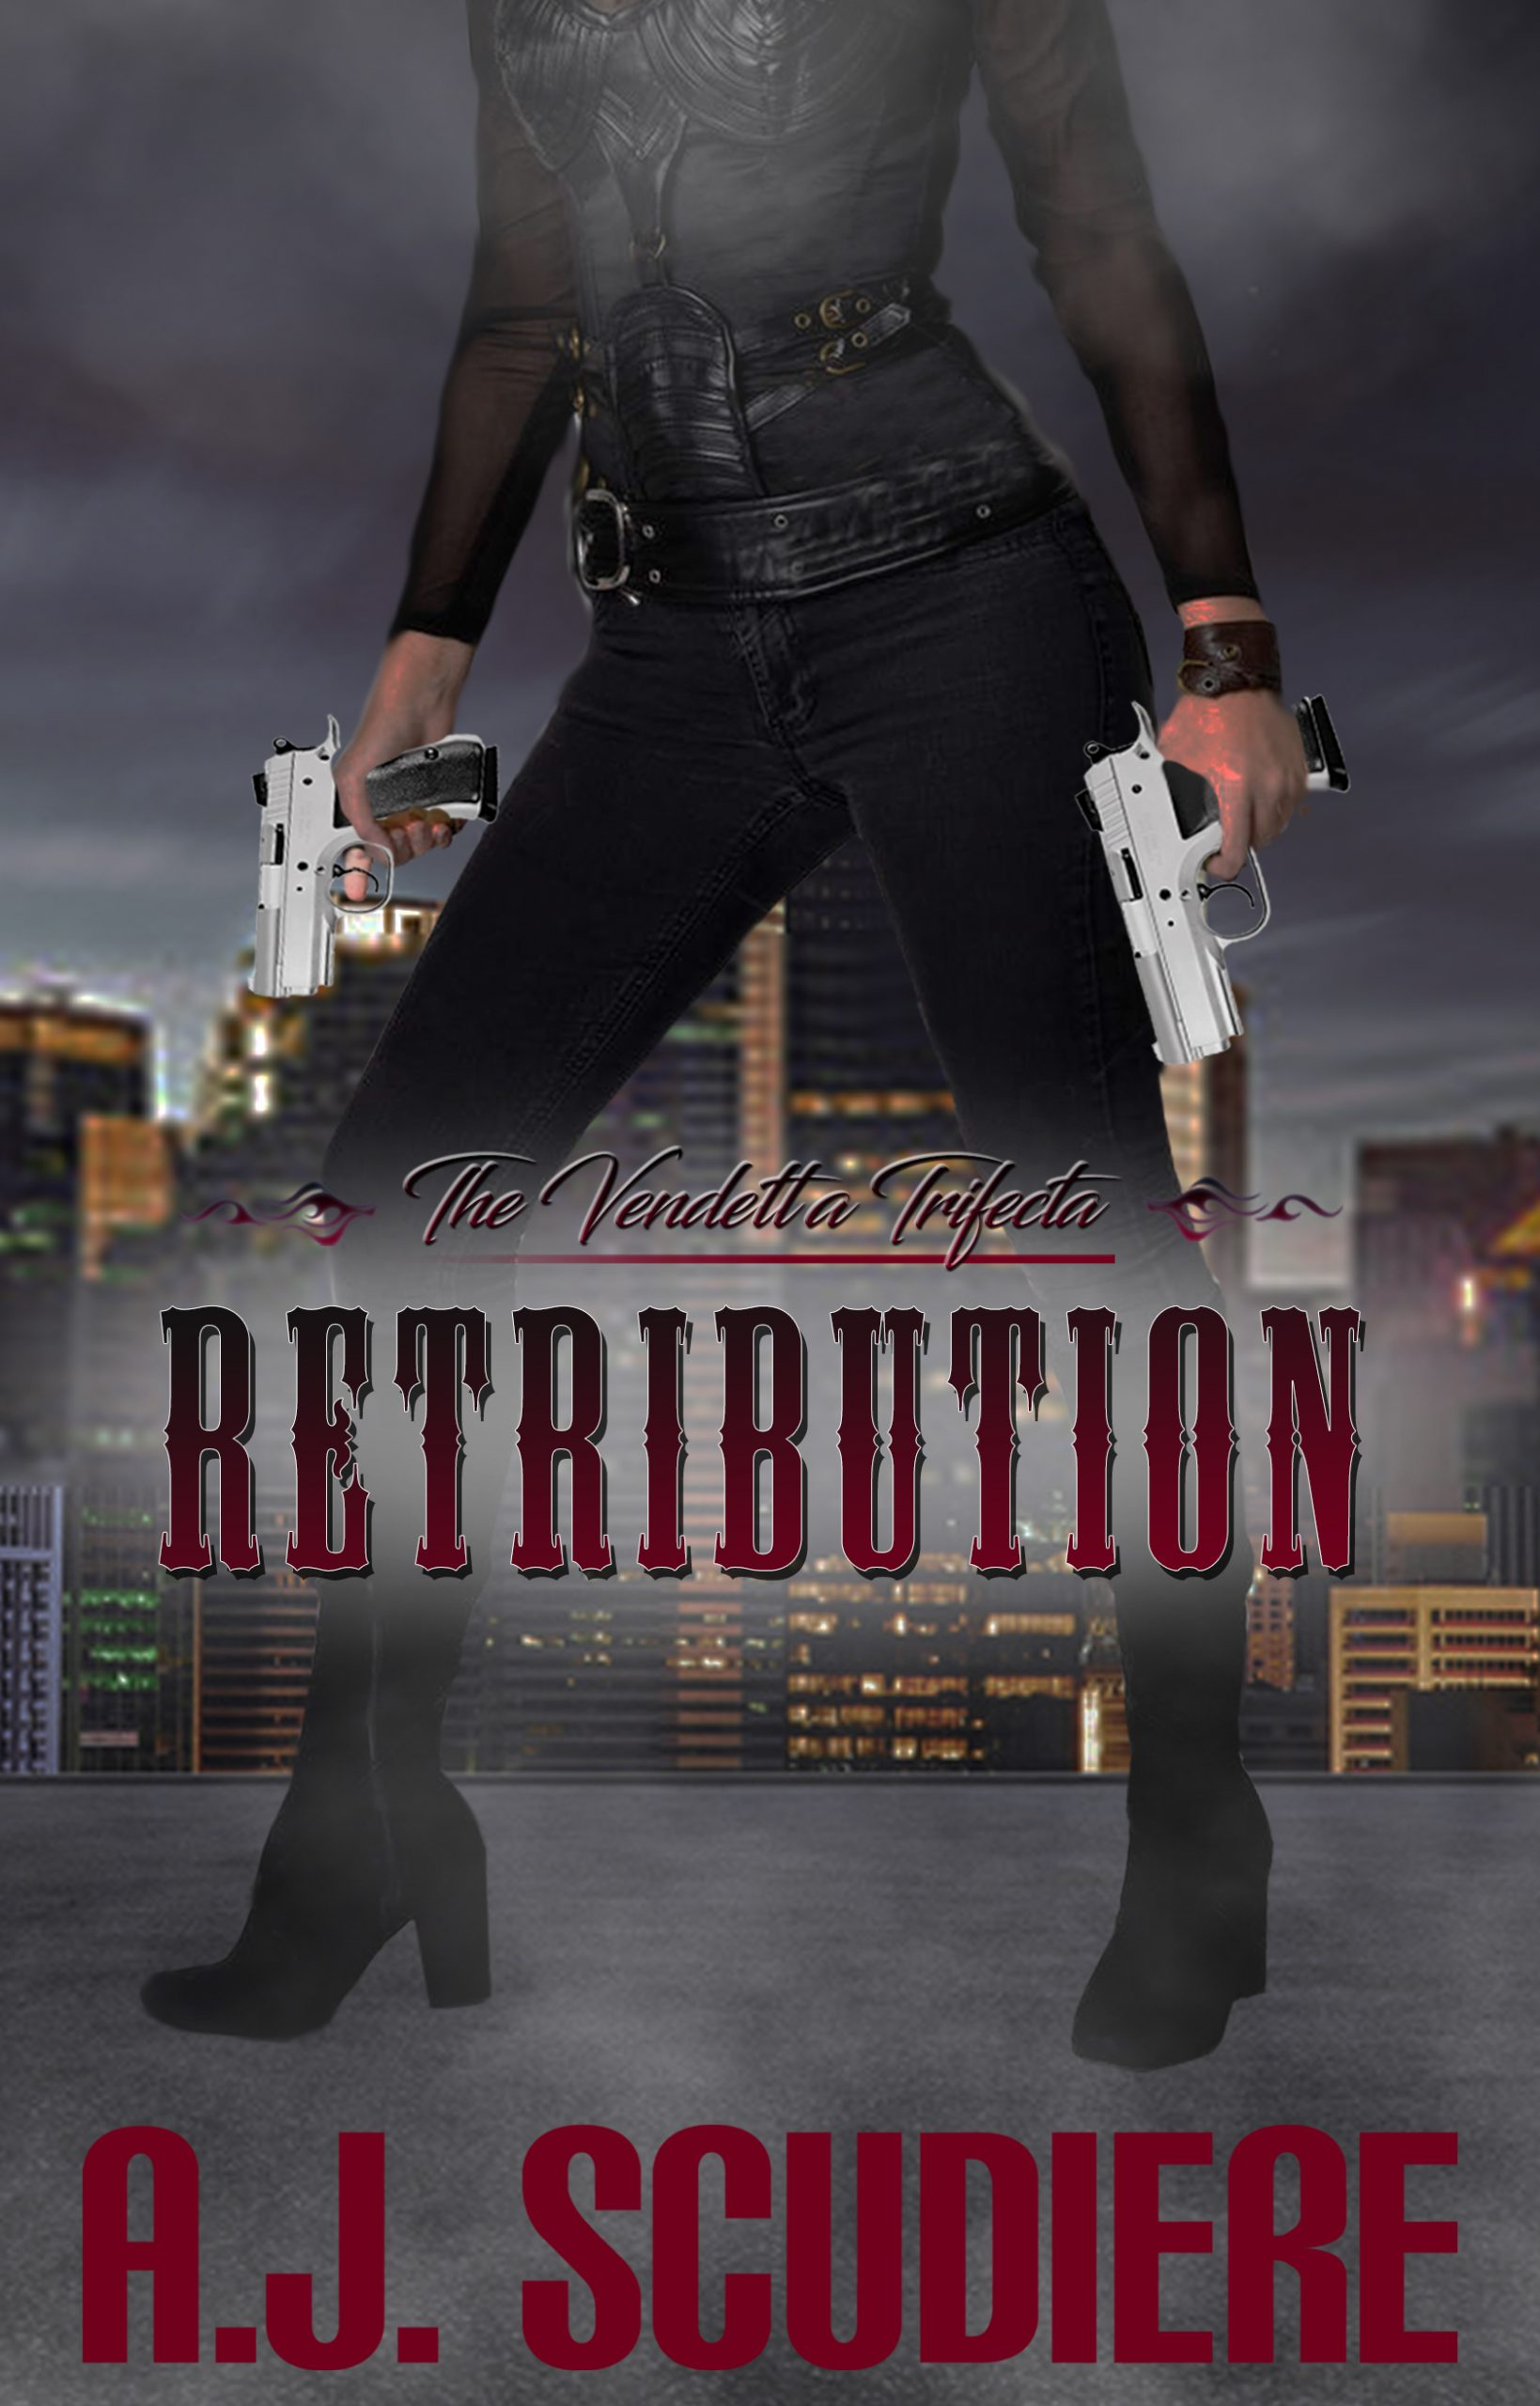 Retribution - Vendetta Trifecta #2